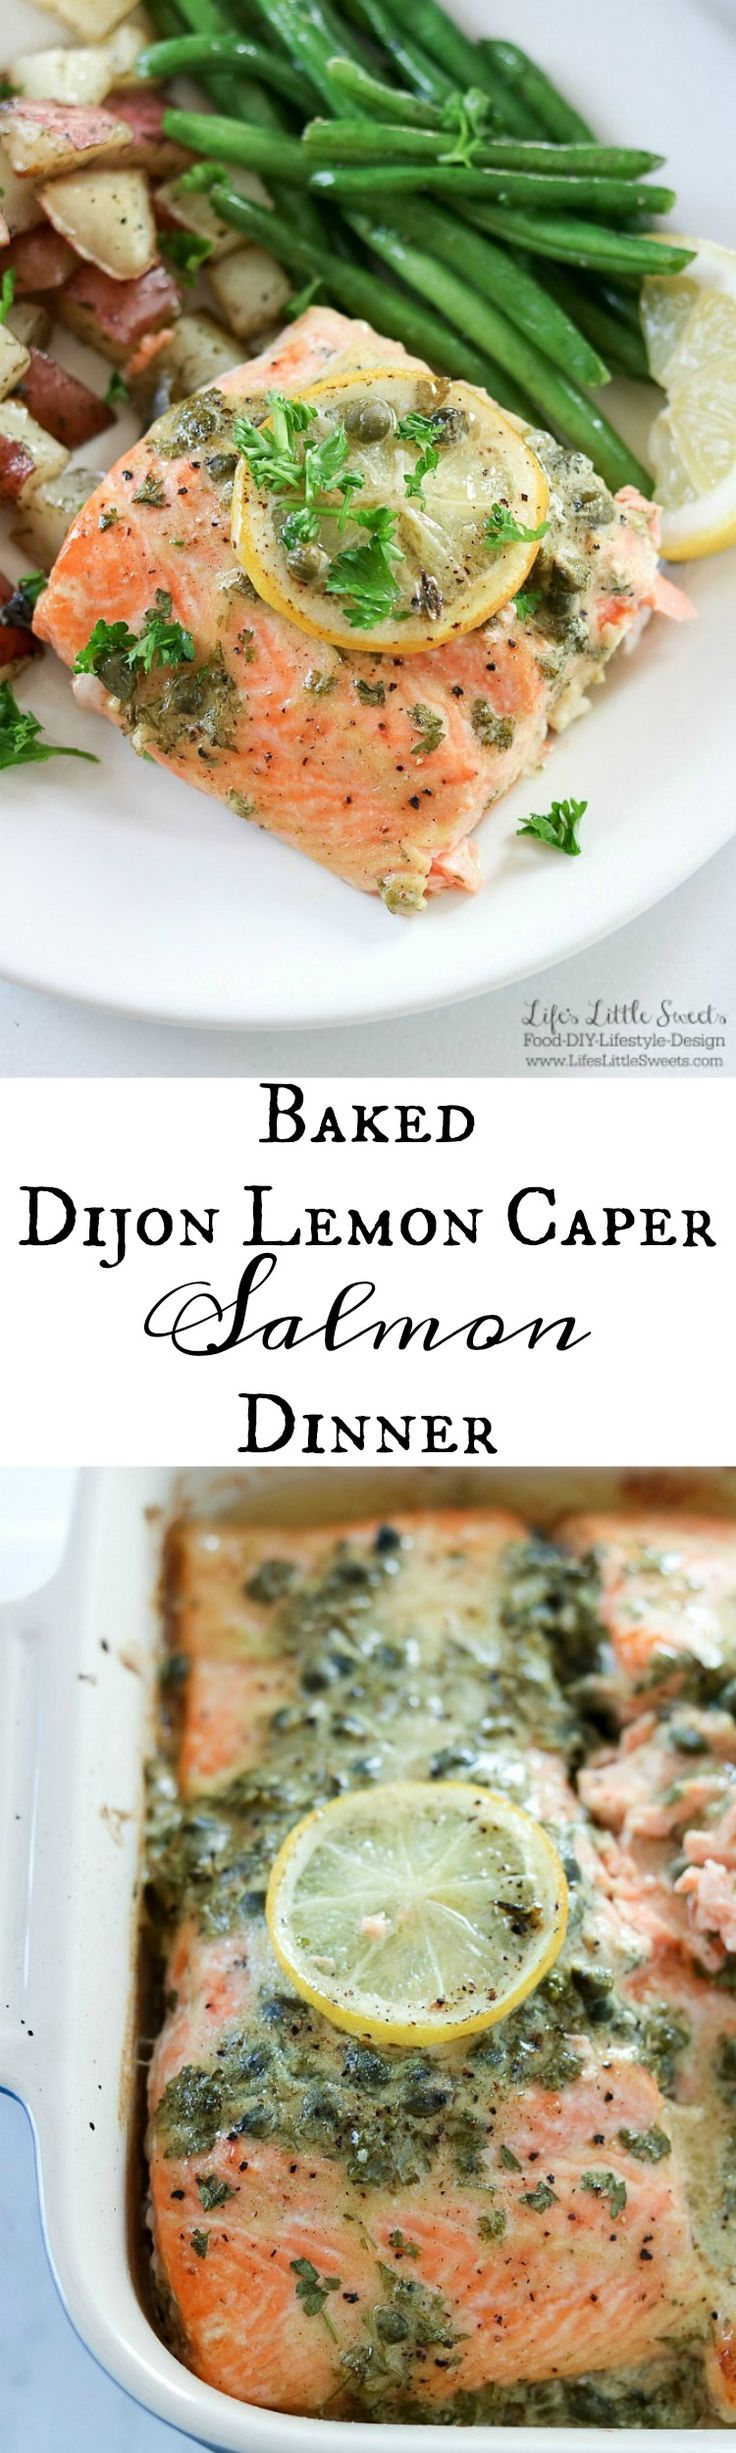 This Baked Dijon Lemon Caper Salmon Dinner is flavorful as it is delicious. Salmon lovers can rejoice with Dijon, lemon and caper flavor infused into melt-in-your mouth fillets of salmon. Served with roasted dill red potatoes and green beans, this dinner is sure to be a new family favorite! www.LifesLittleSweets.com